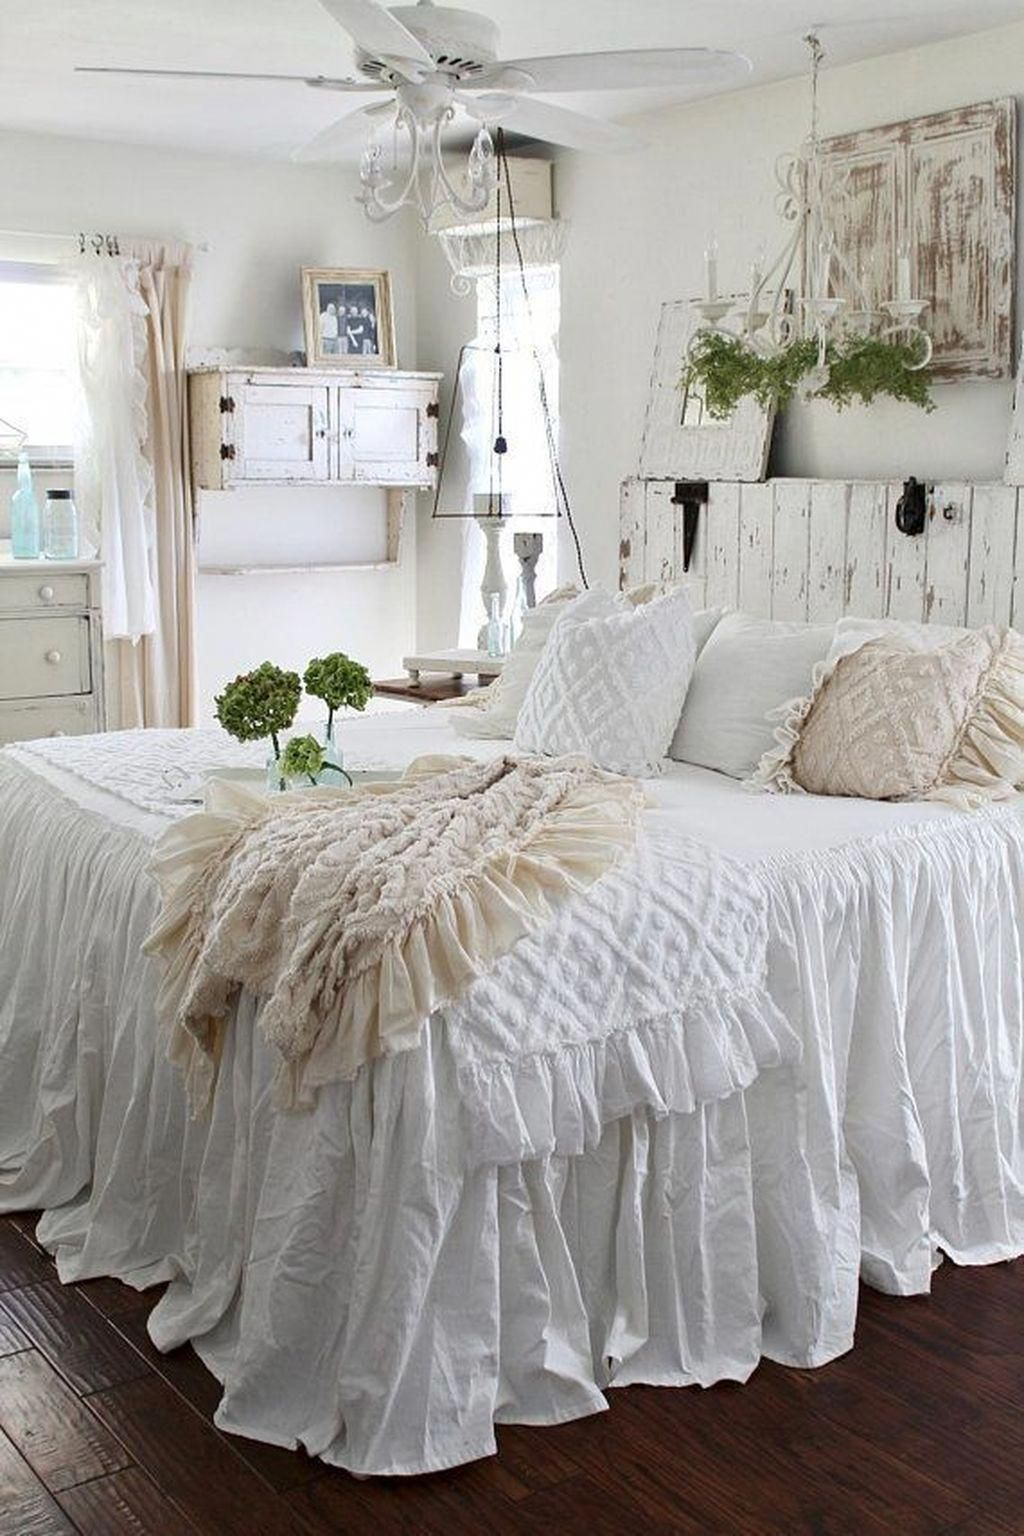 Cool 47 Modern Shabby Chic Bedroom Ideas Shabbychichomes Shabby Chic Room Chic Living Room Shabby Chic Bedrooms